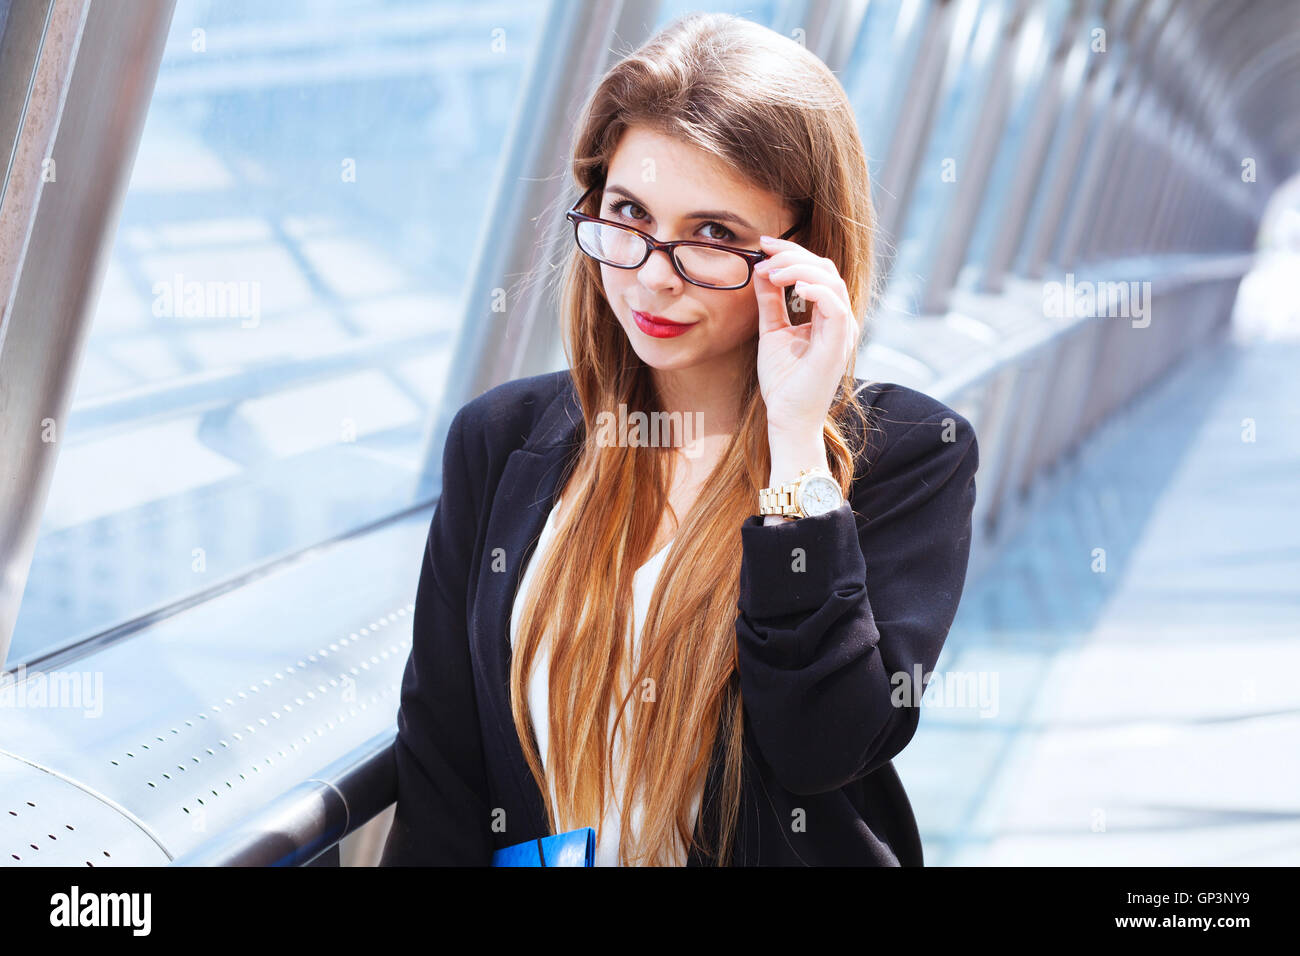 suspicious tricky strict business woman, real estate agent Stock Photo